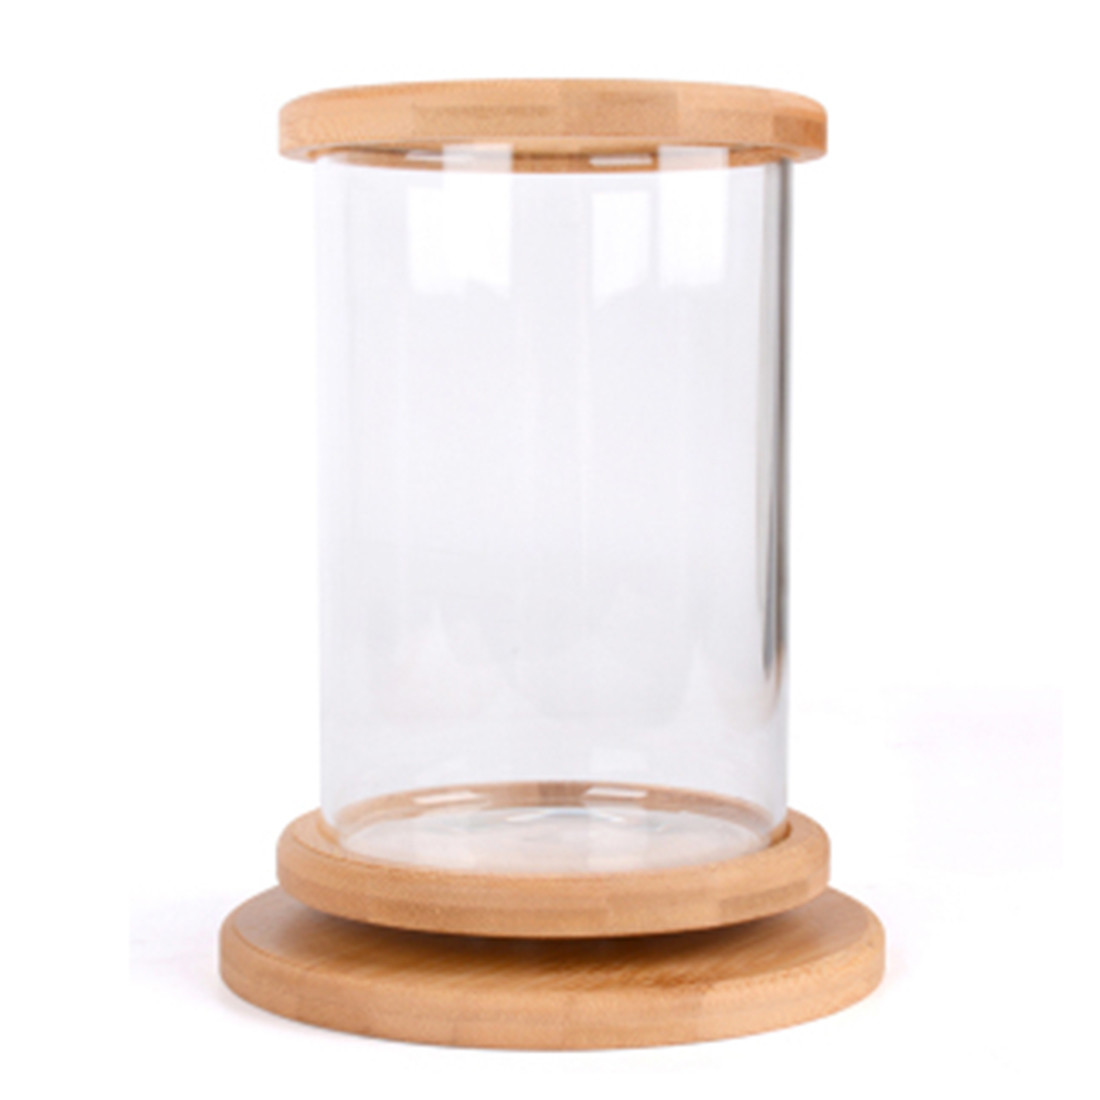 glass vases for betta fish of mini desktop ecological bottle fish tank bettas cylinder in regarding 1 x fish tank 4680908898 920350397 4681378891 920350397 4681393105 920350397 4680914270 920350397